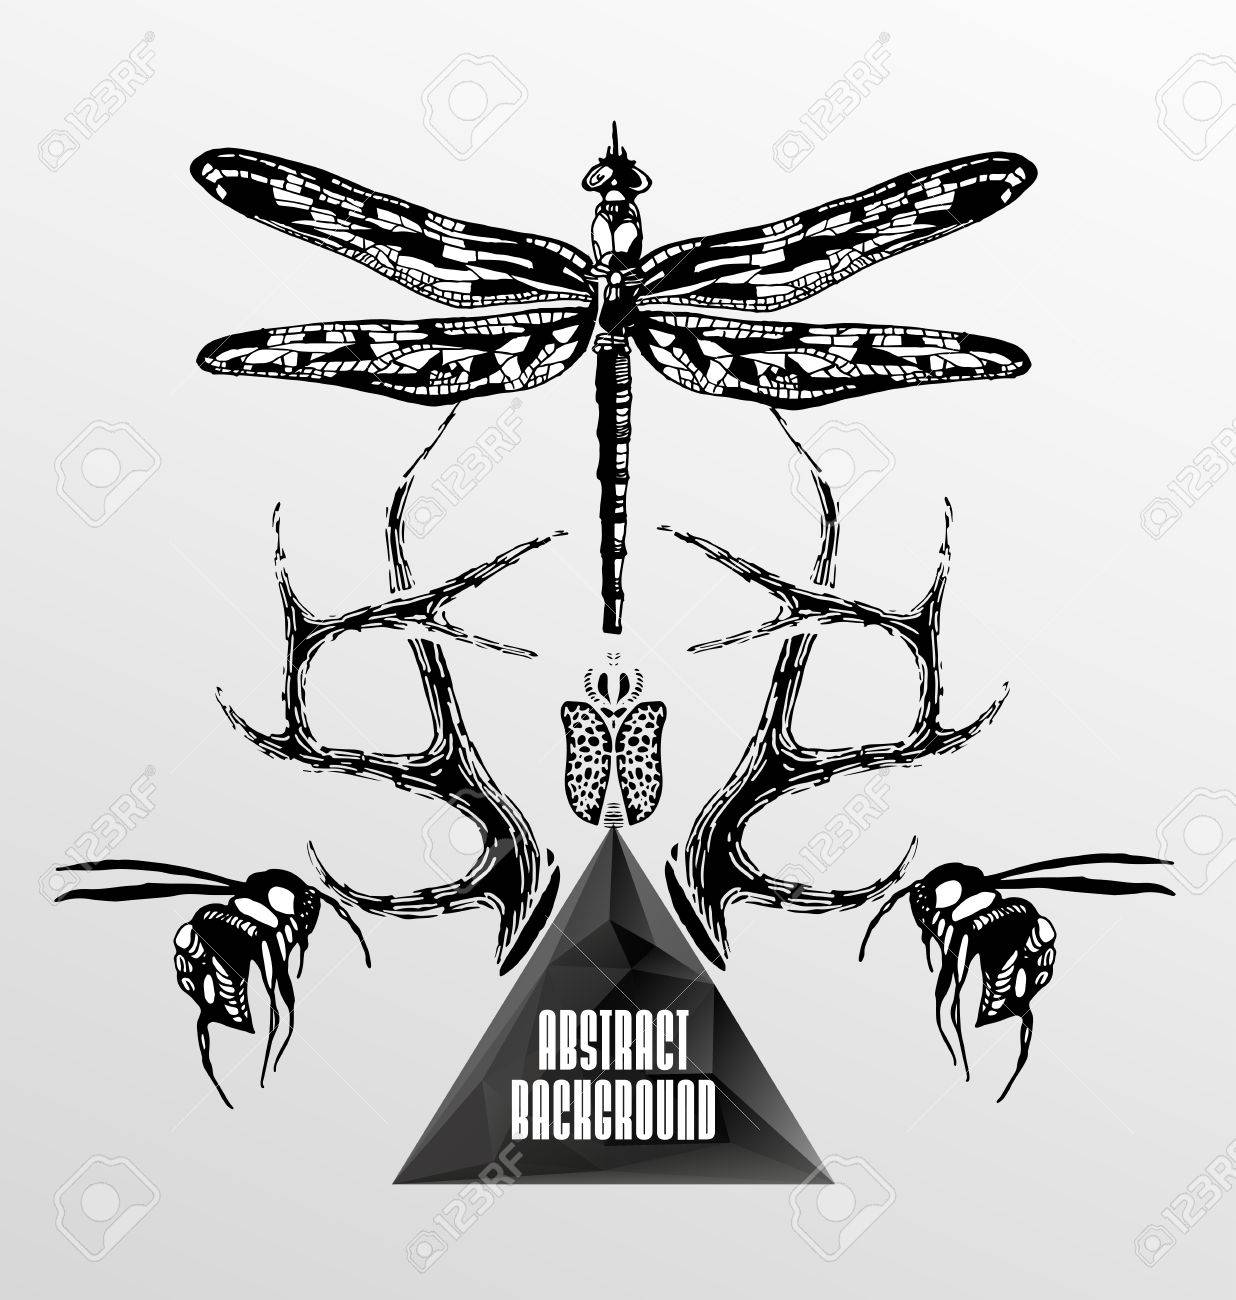 Abstract  gothic sacral illustration with polygon,  crystal design element, symbol, sign for tattoo Stock Vector - 27136373